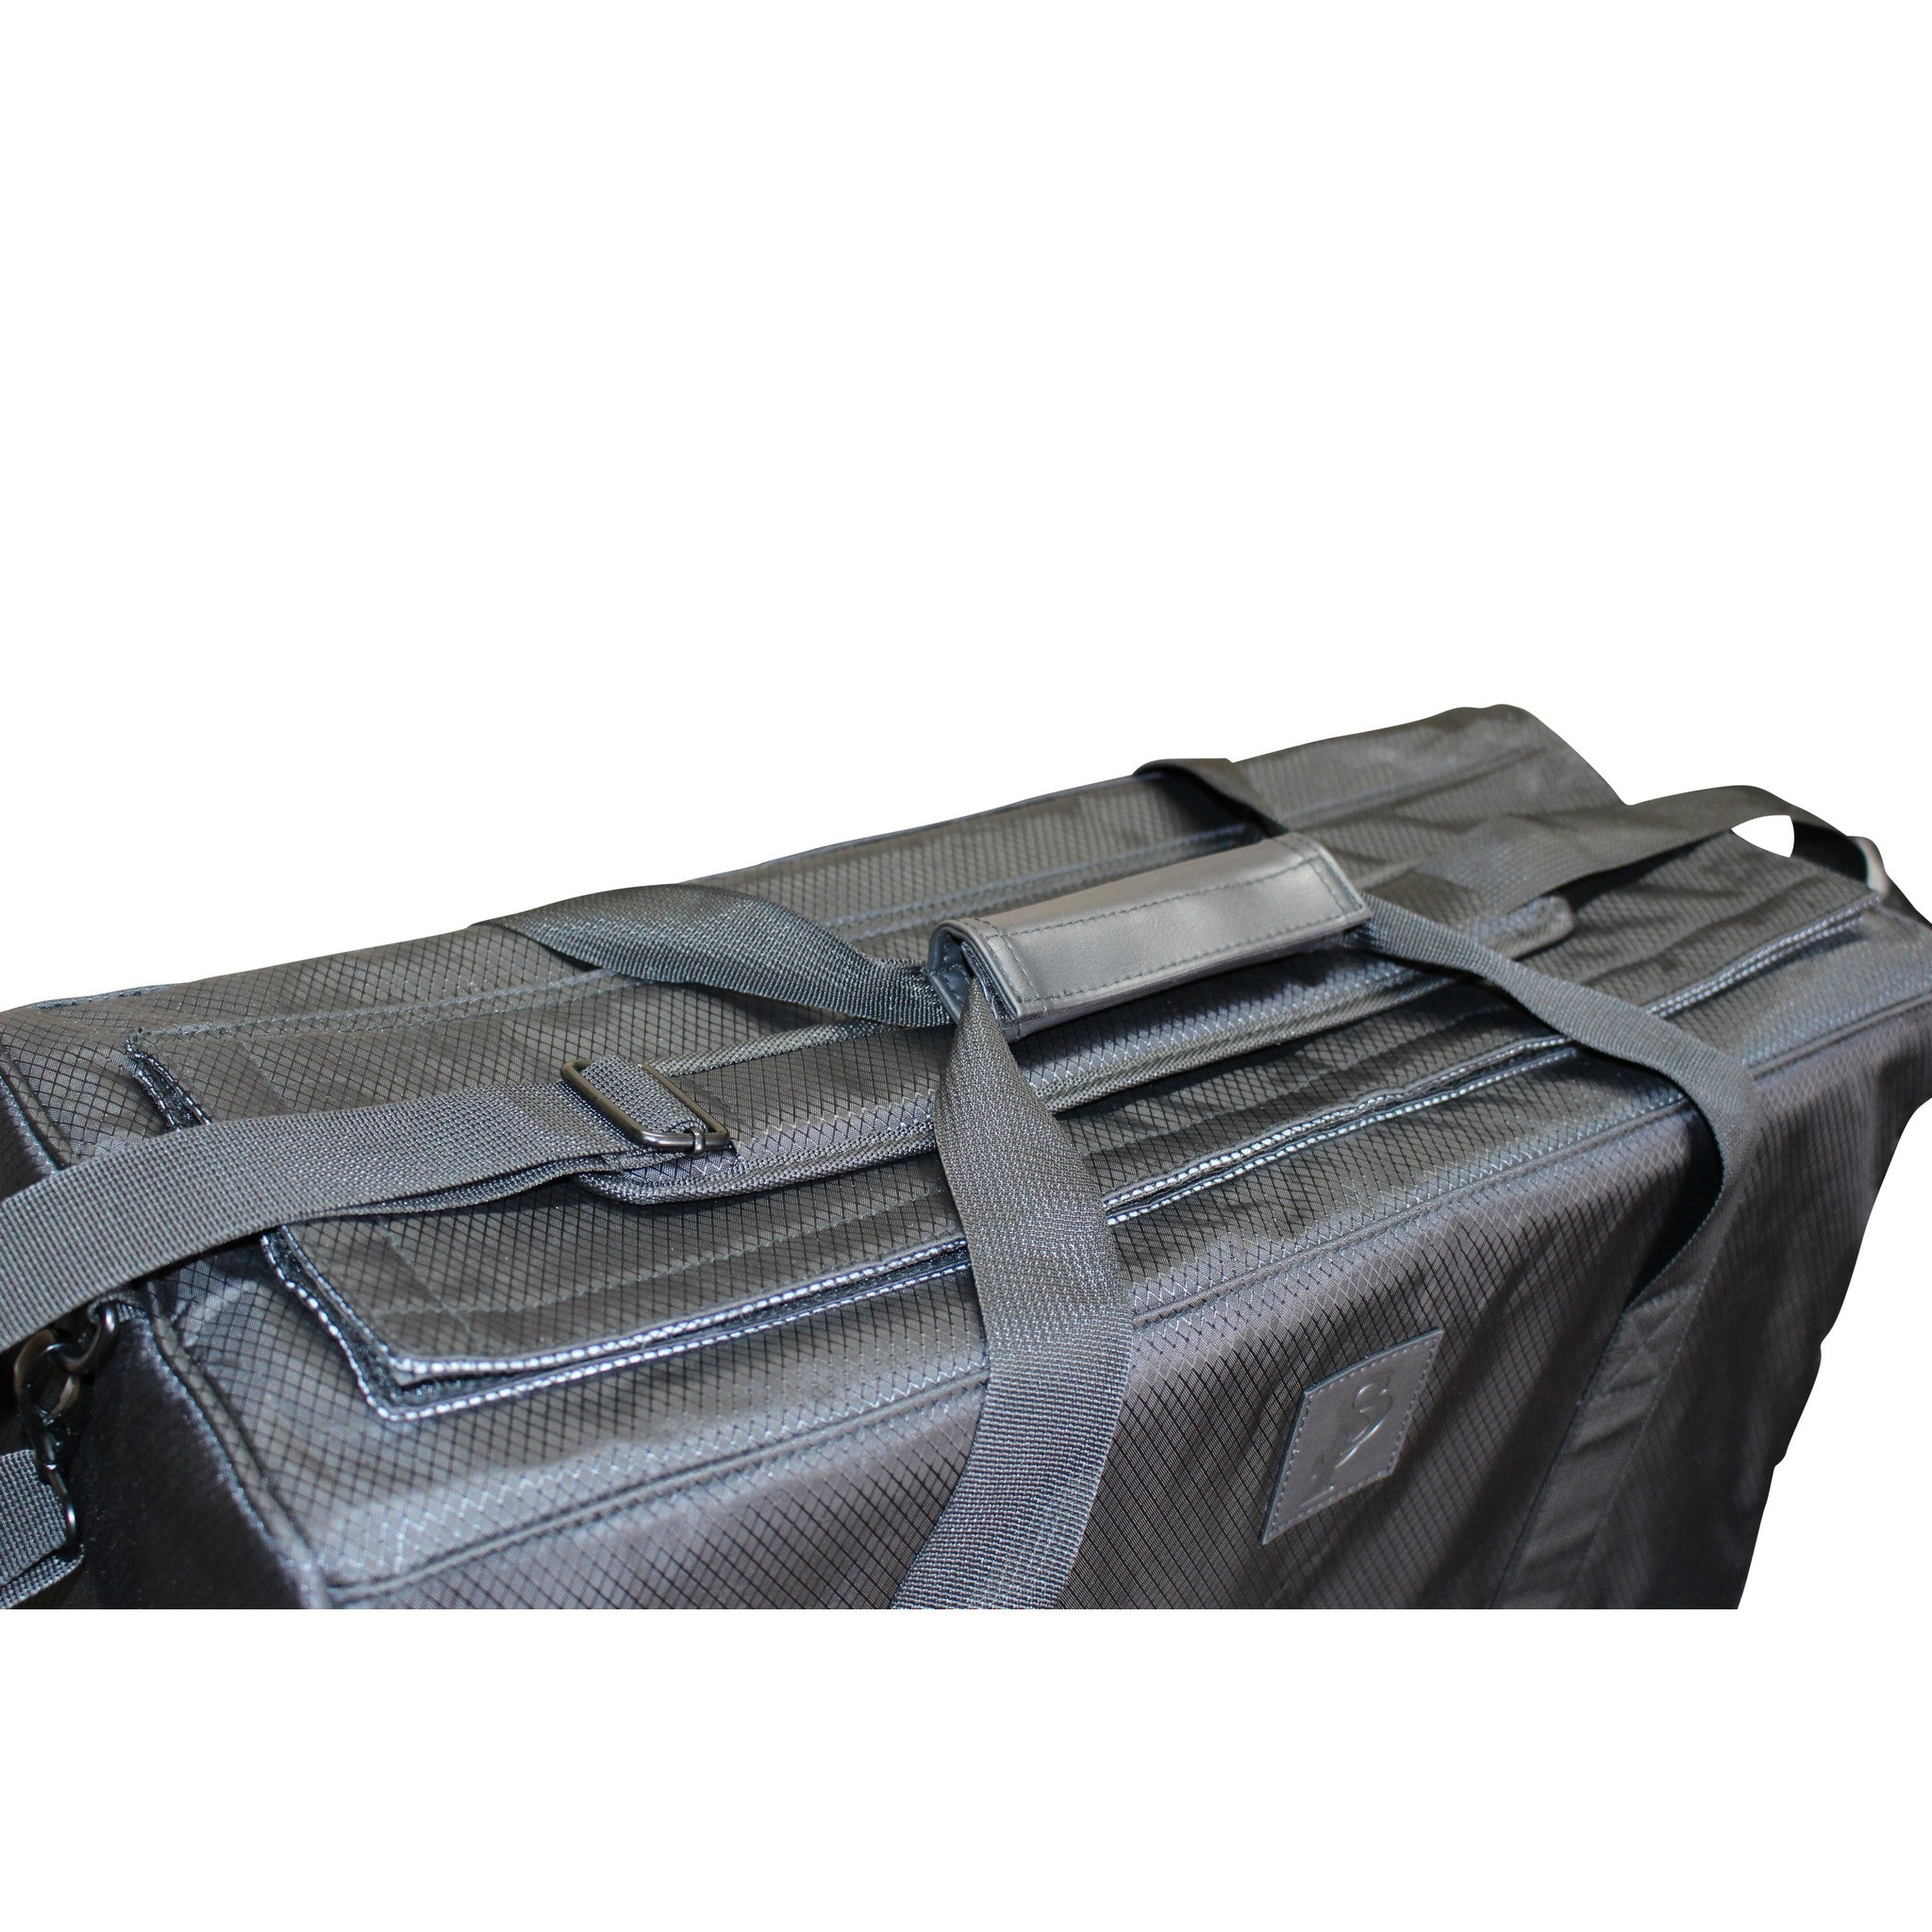 The Trap Duffle (L) in Black - Smell Proof Duffle Bag-Duffle Bag-Snoopproofbags